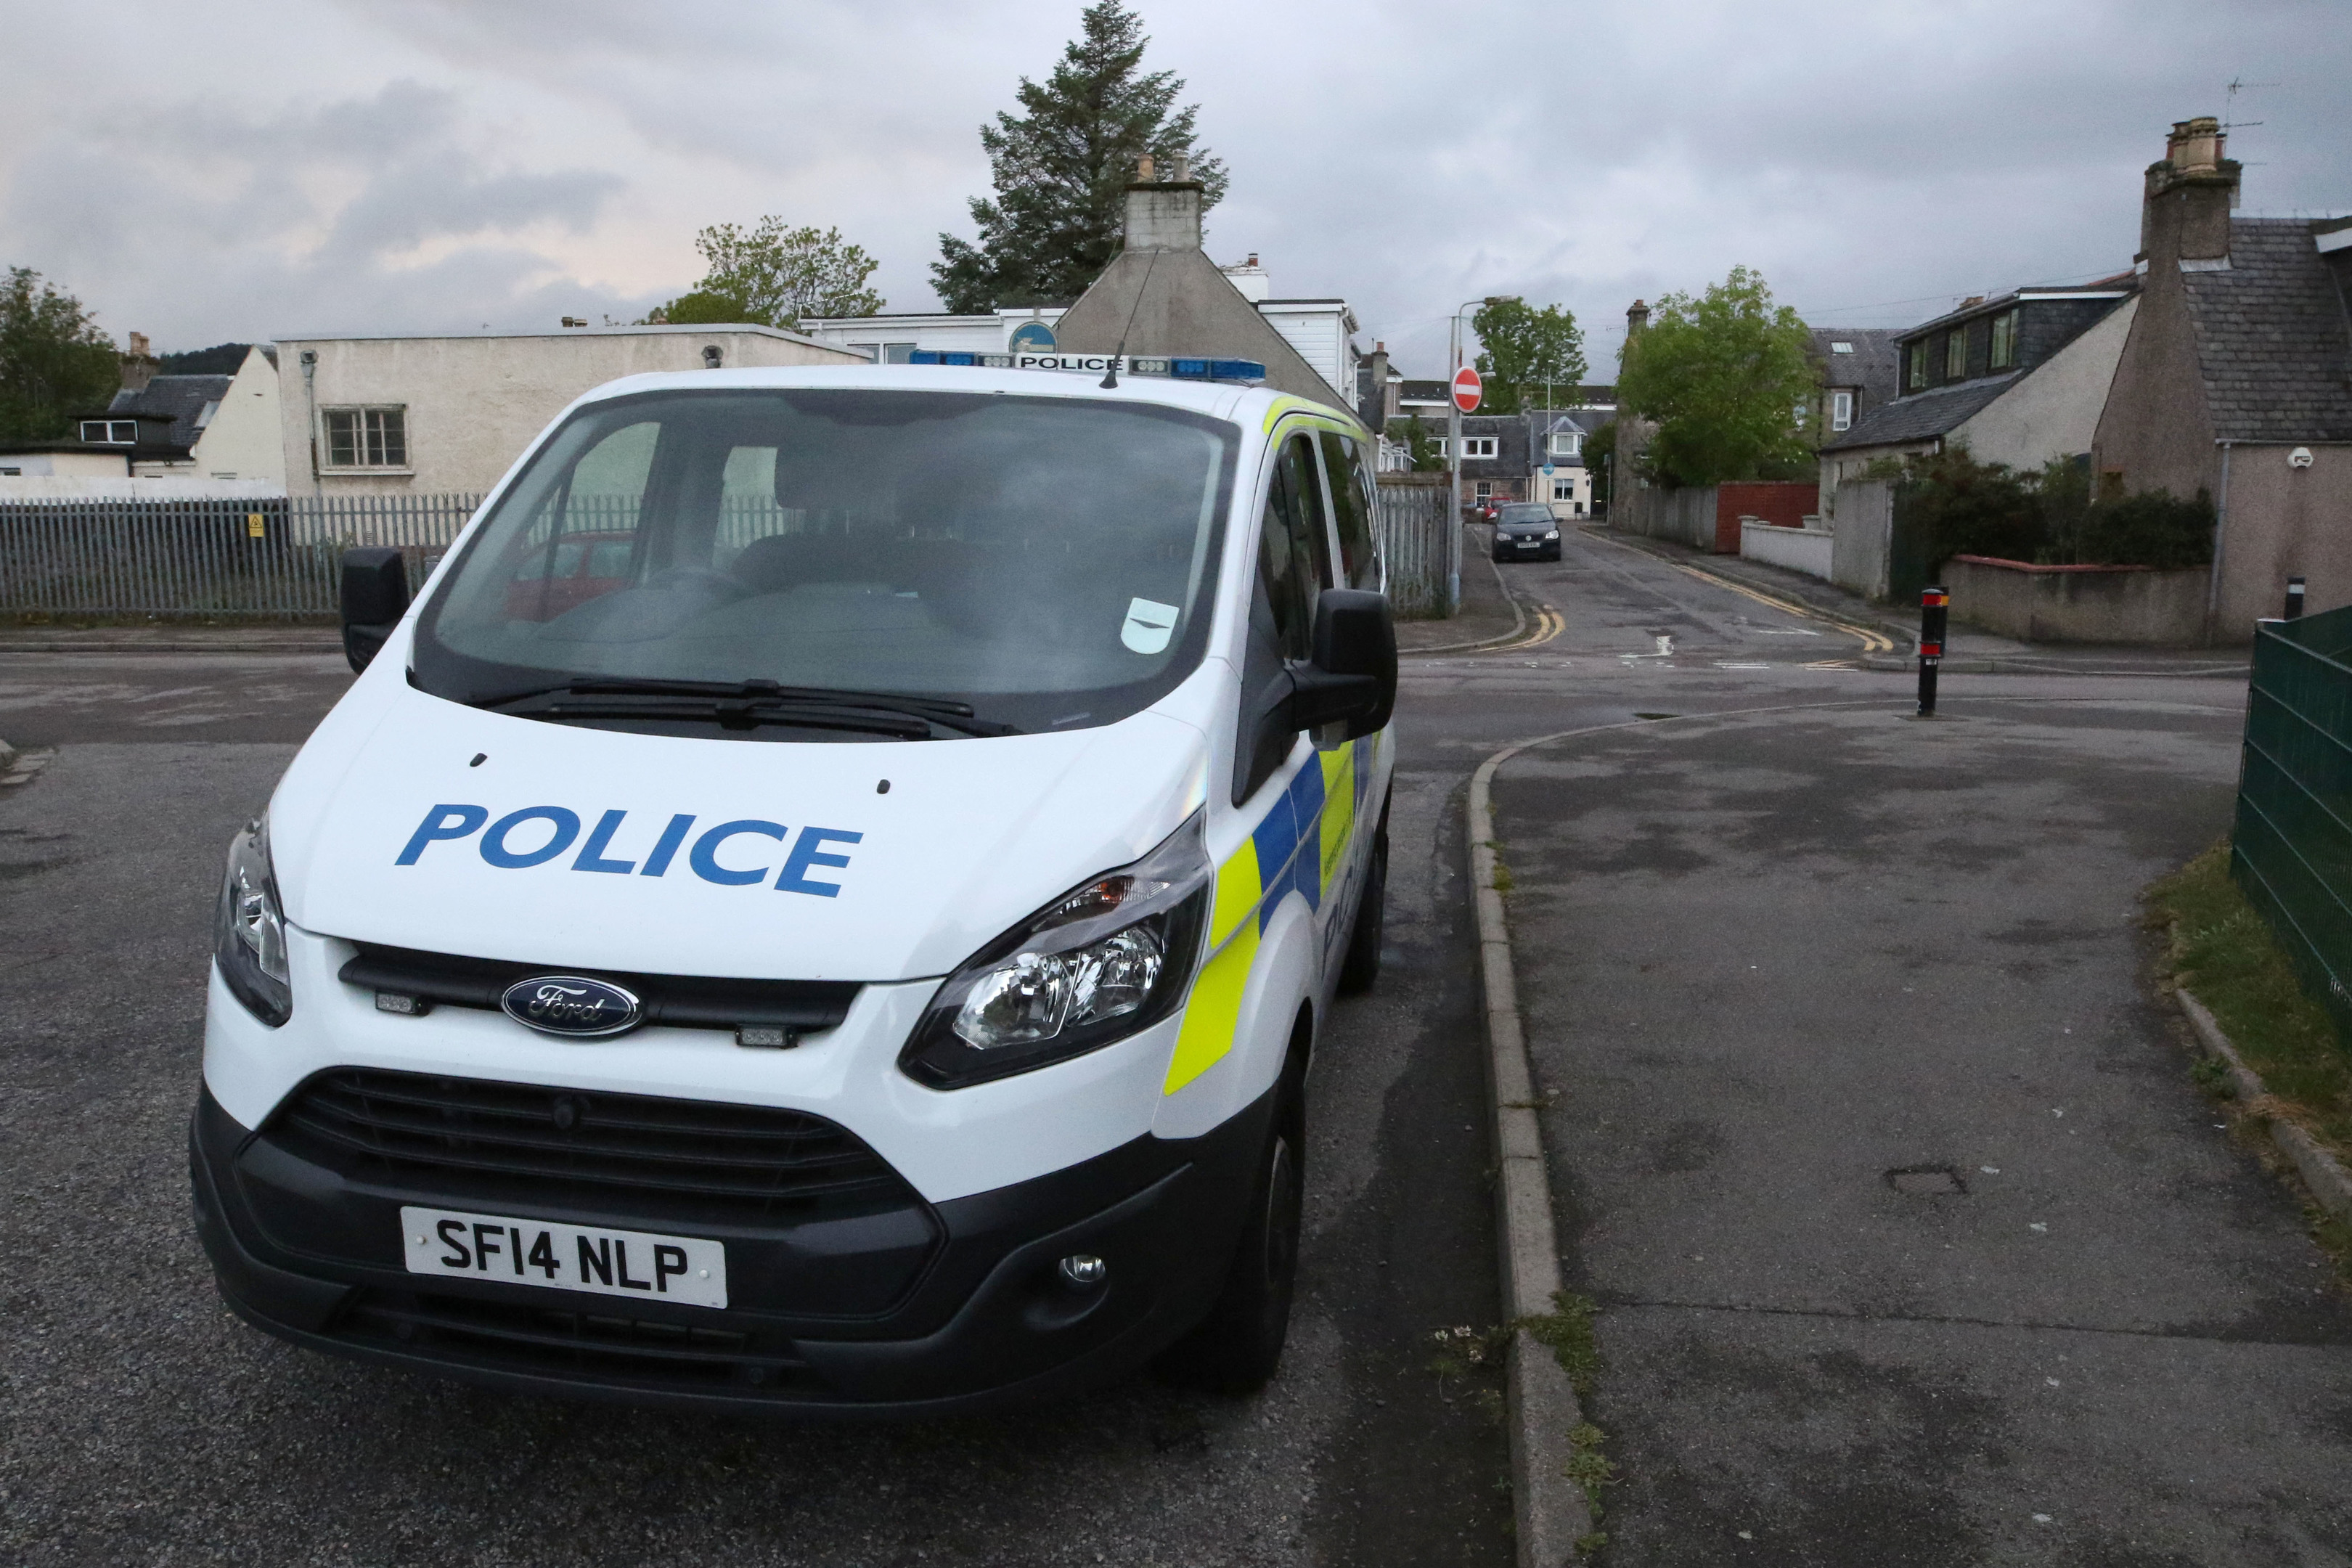 Police on Telford Avenue, Inverness